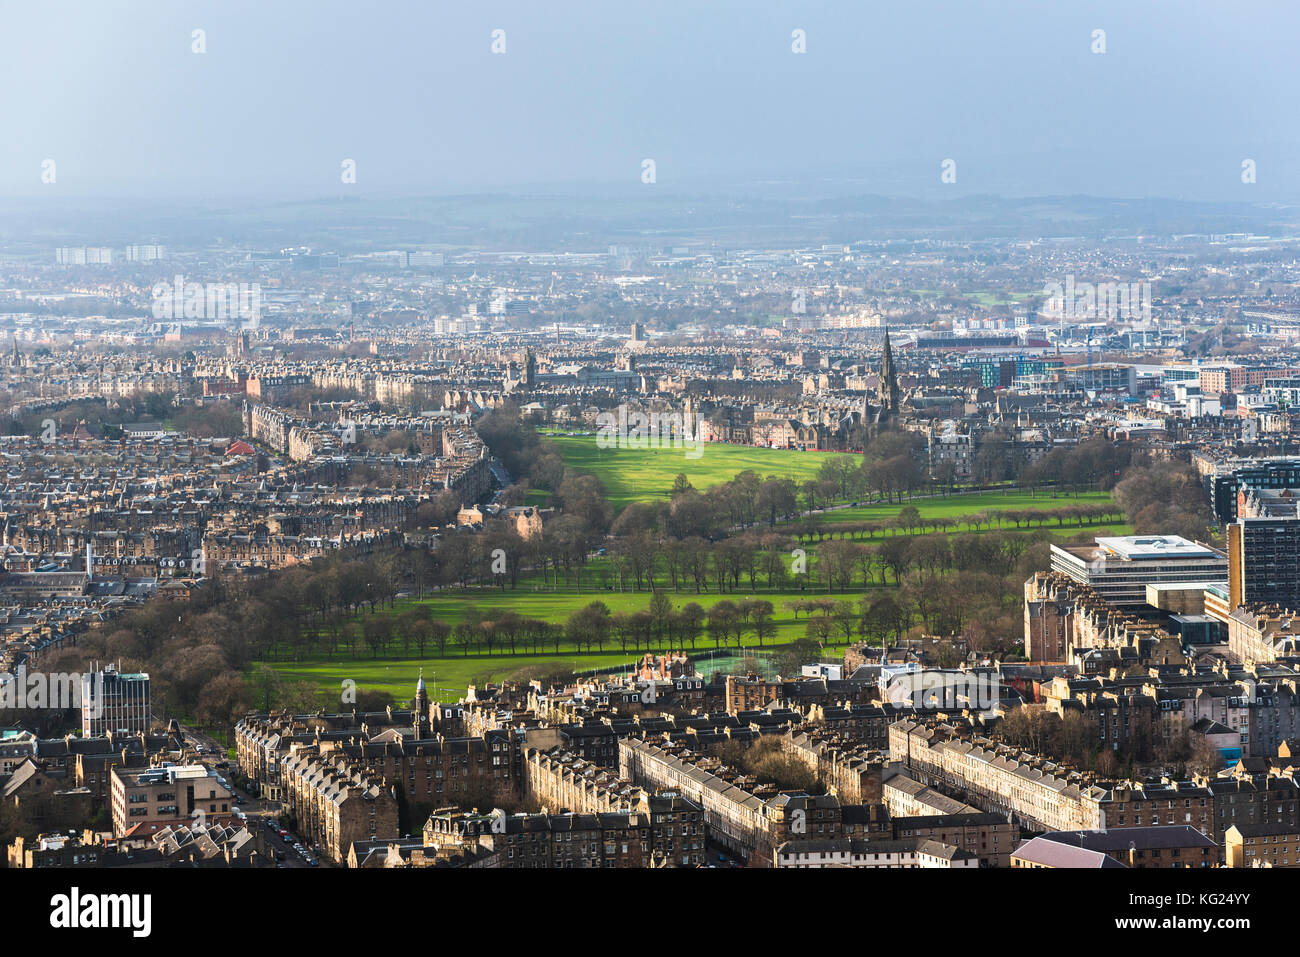 Arthur's Seat, Edinburgh, Scotland, United Kingdom, Europe - Stock Image